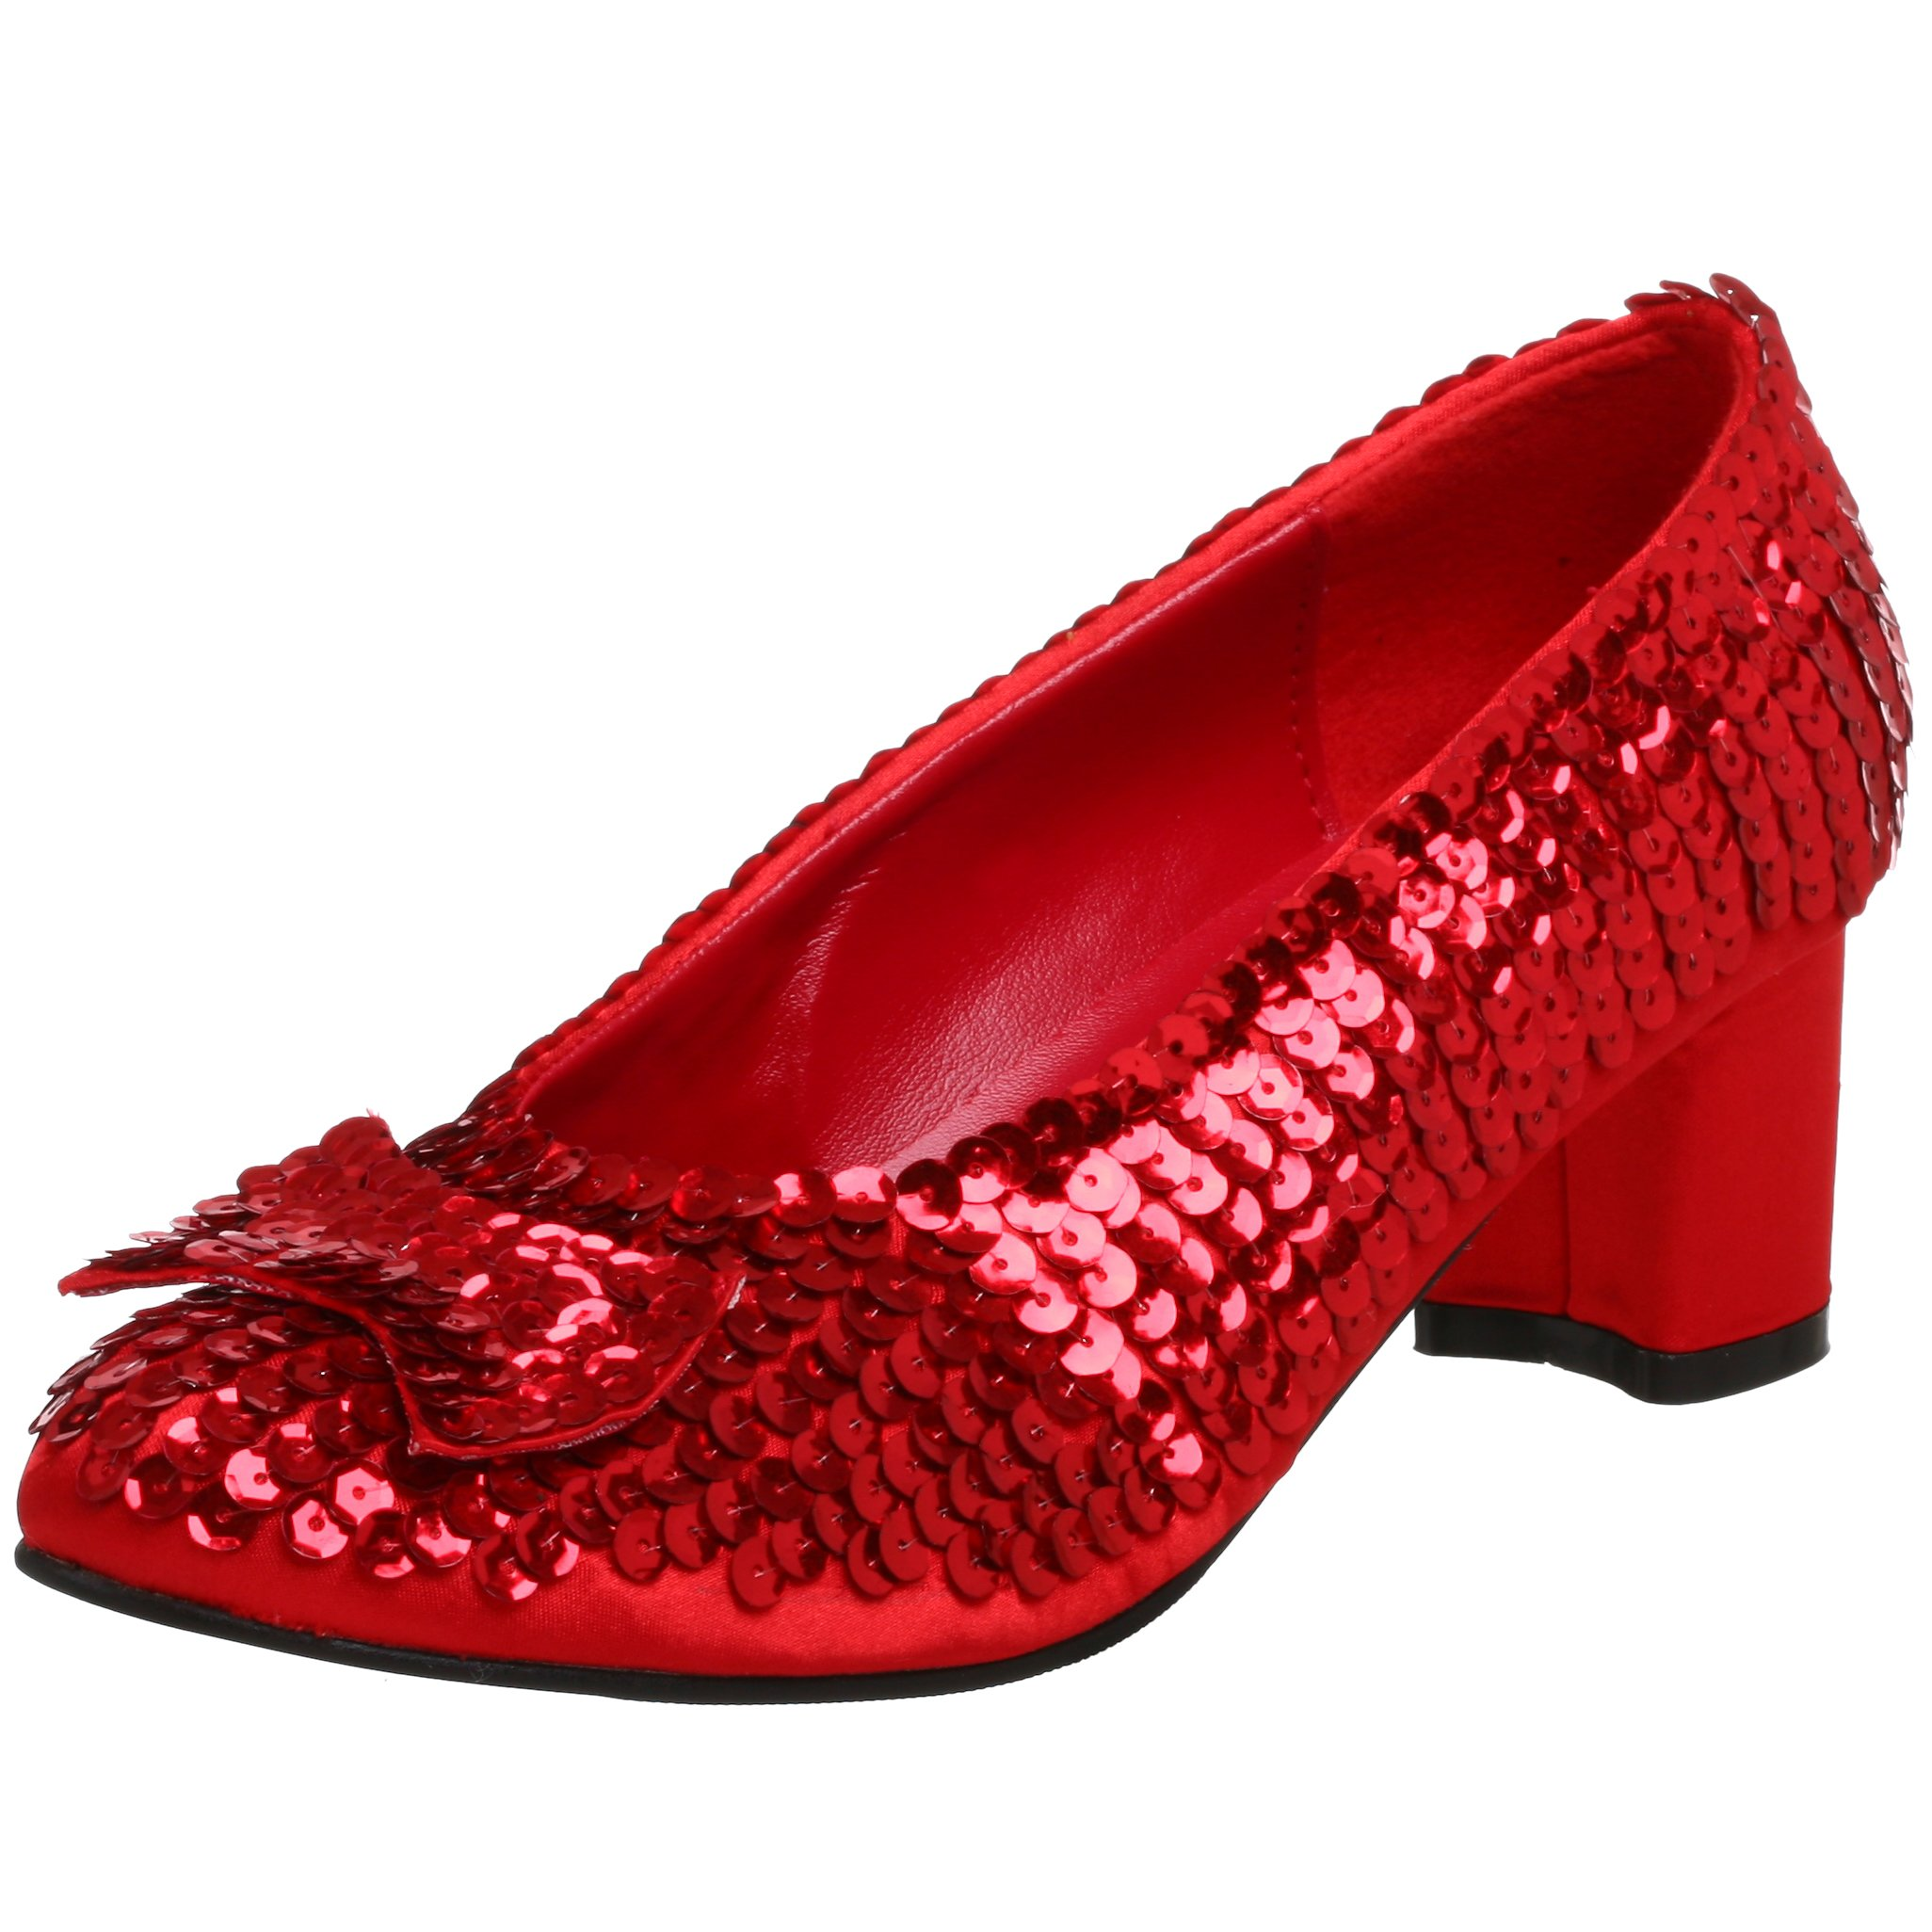 Pleasers Shoe Sequin Rd Womens Md 8